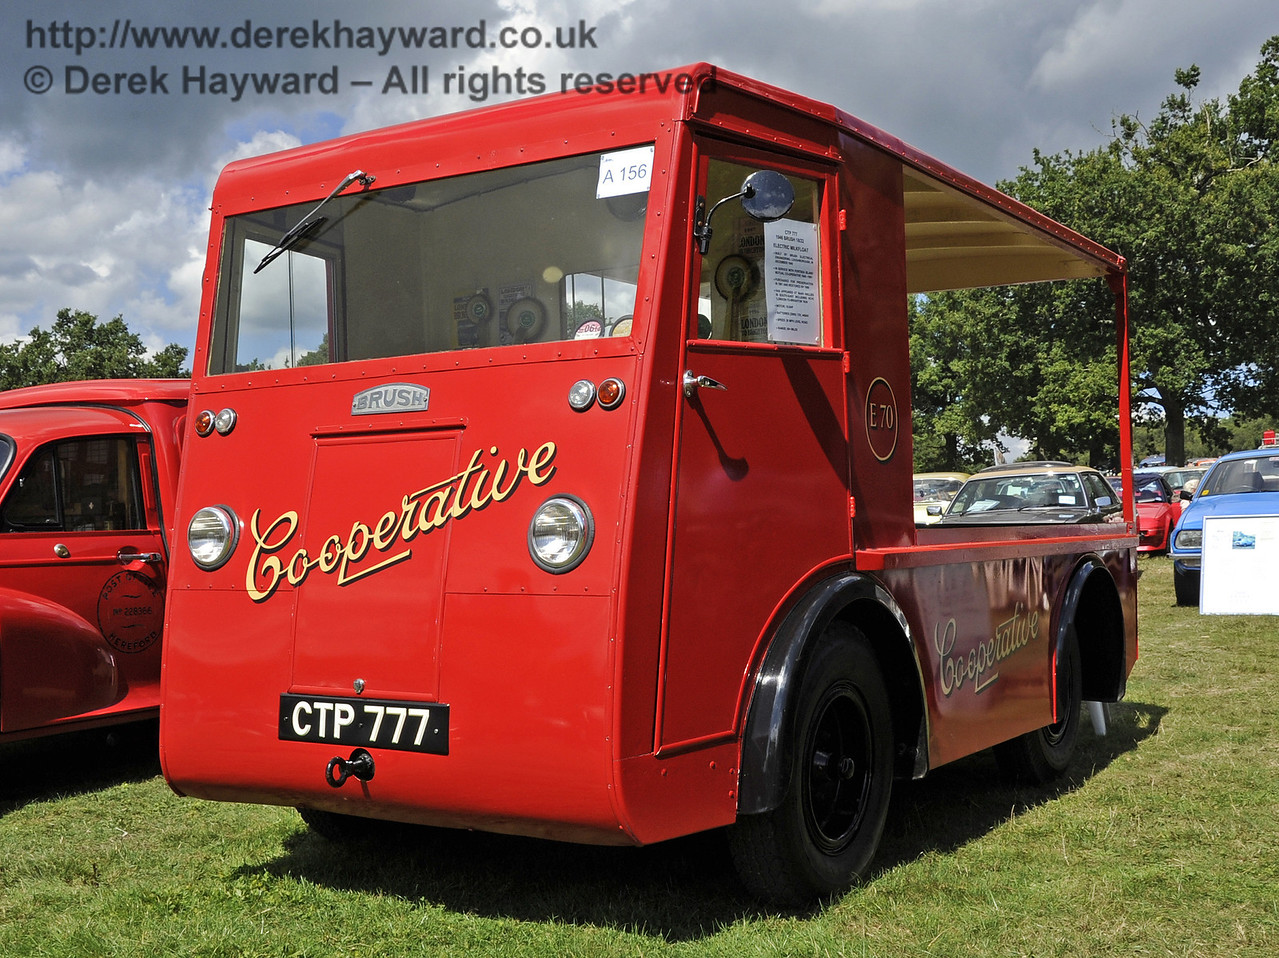 The Lewes Cup for best commercial vehicle was awarded to Peter Williams for his Brush Co-operative milk float, CTP777.  Vintage Transport Weekend, Horsted Keynes, 11.08.2013  7844